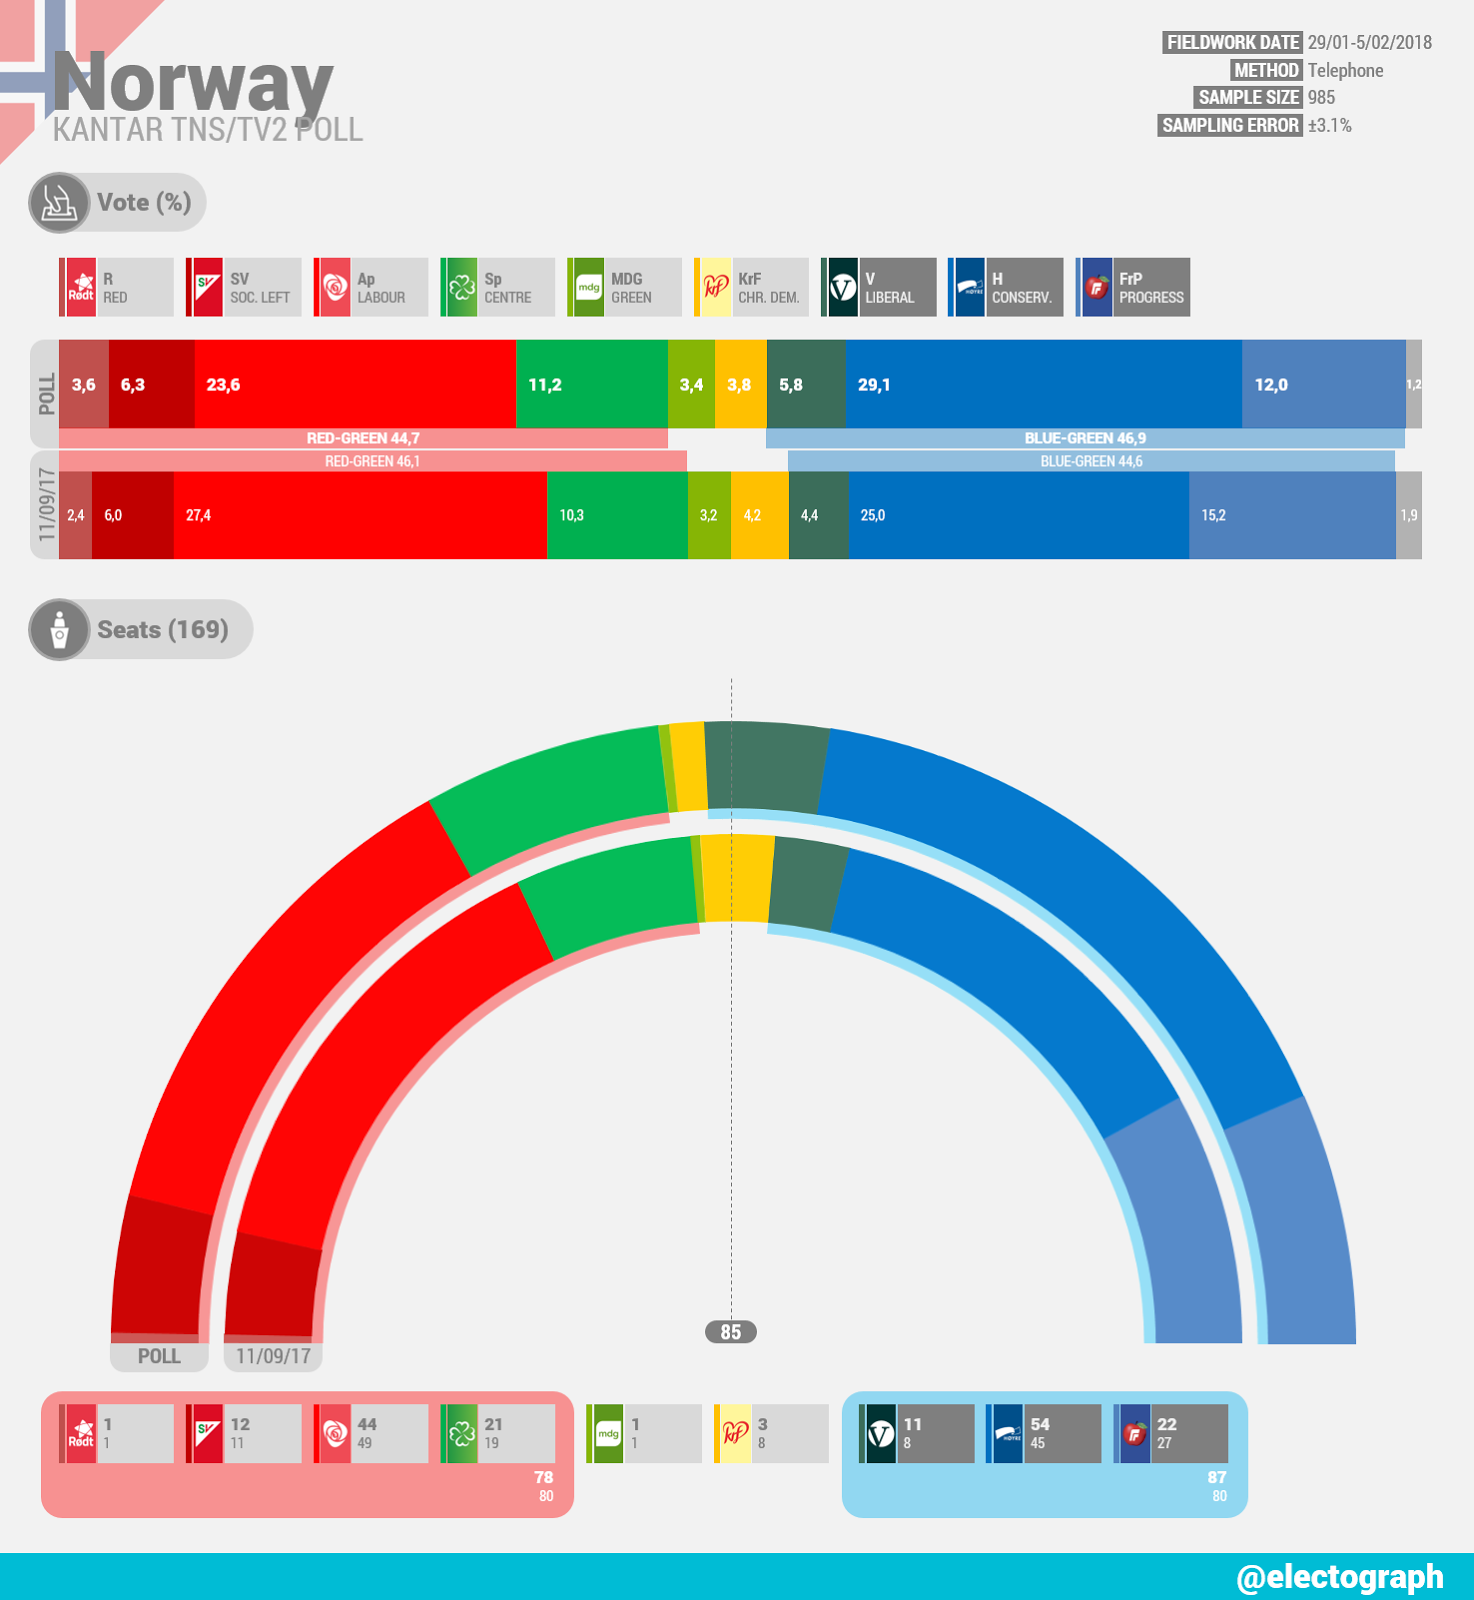 NORWAY Kantar TNS poll chart for TV2, February 2018